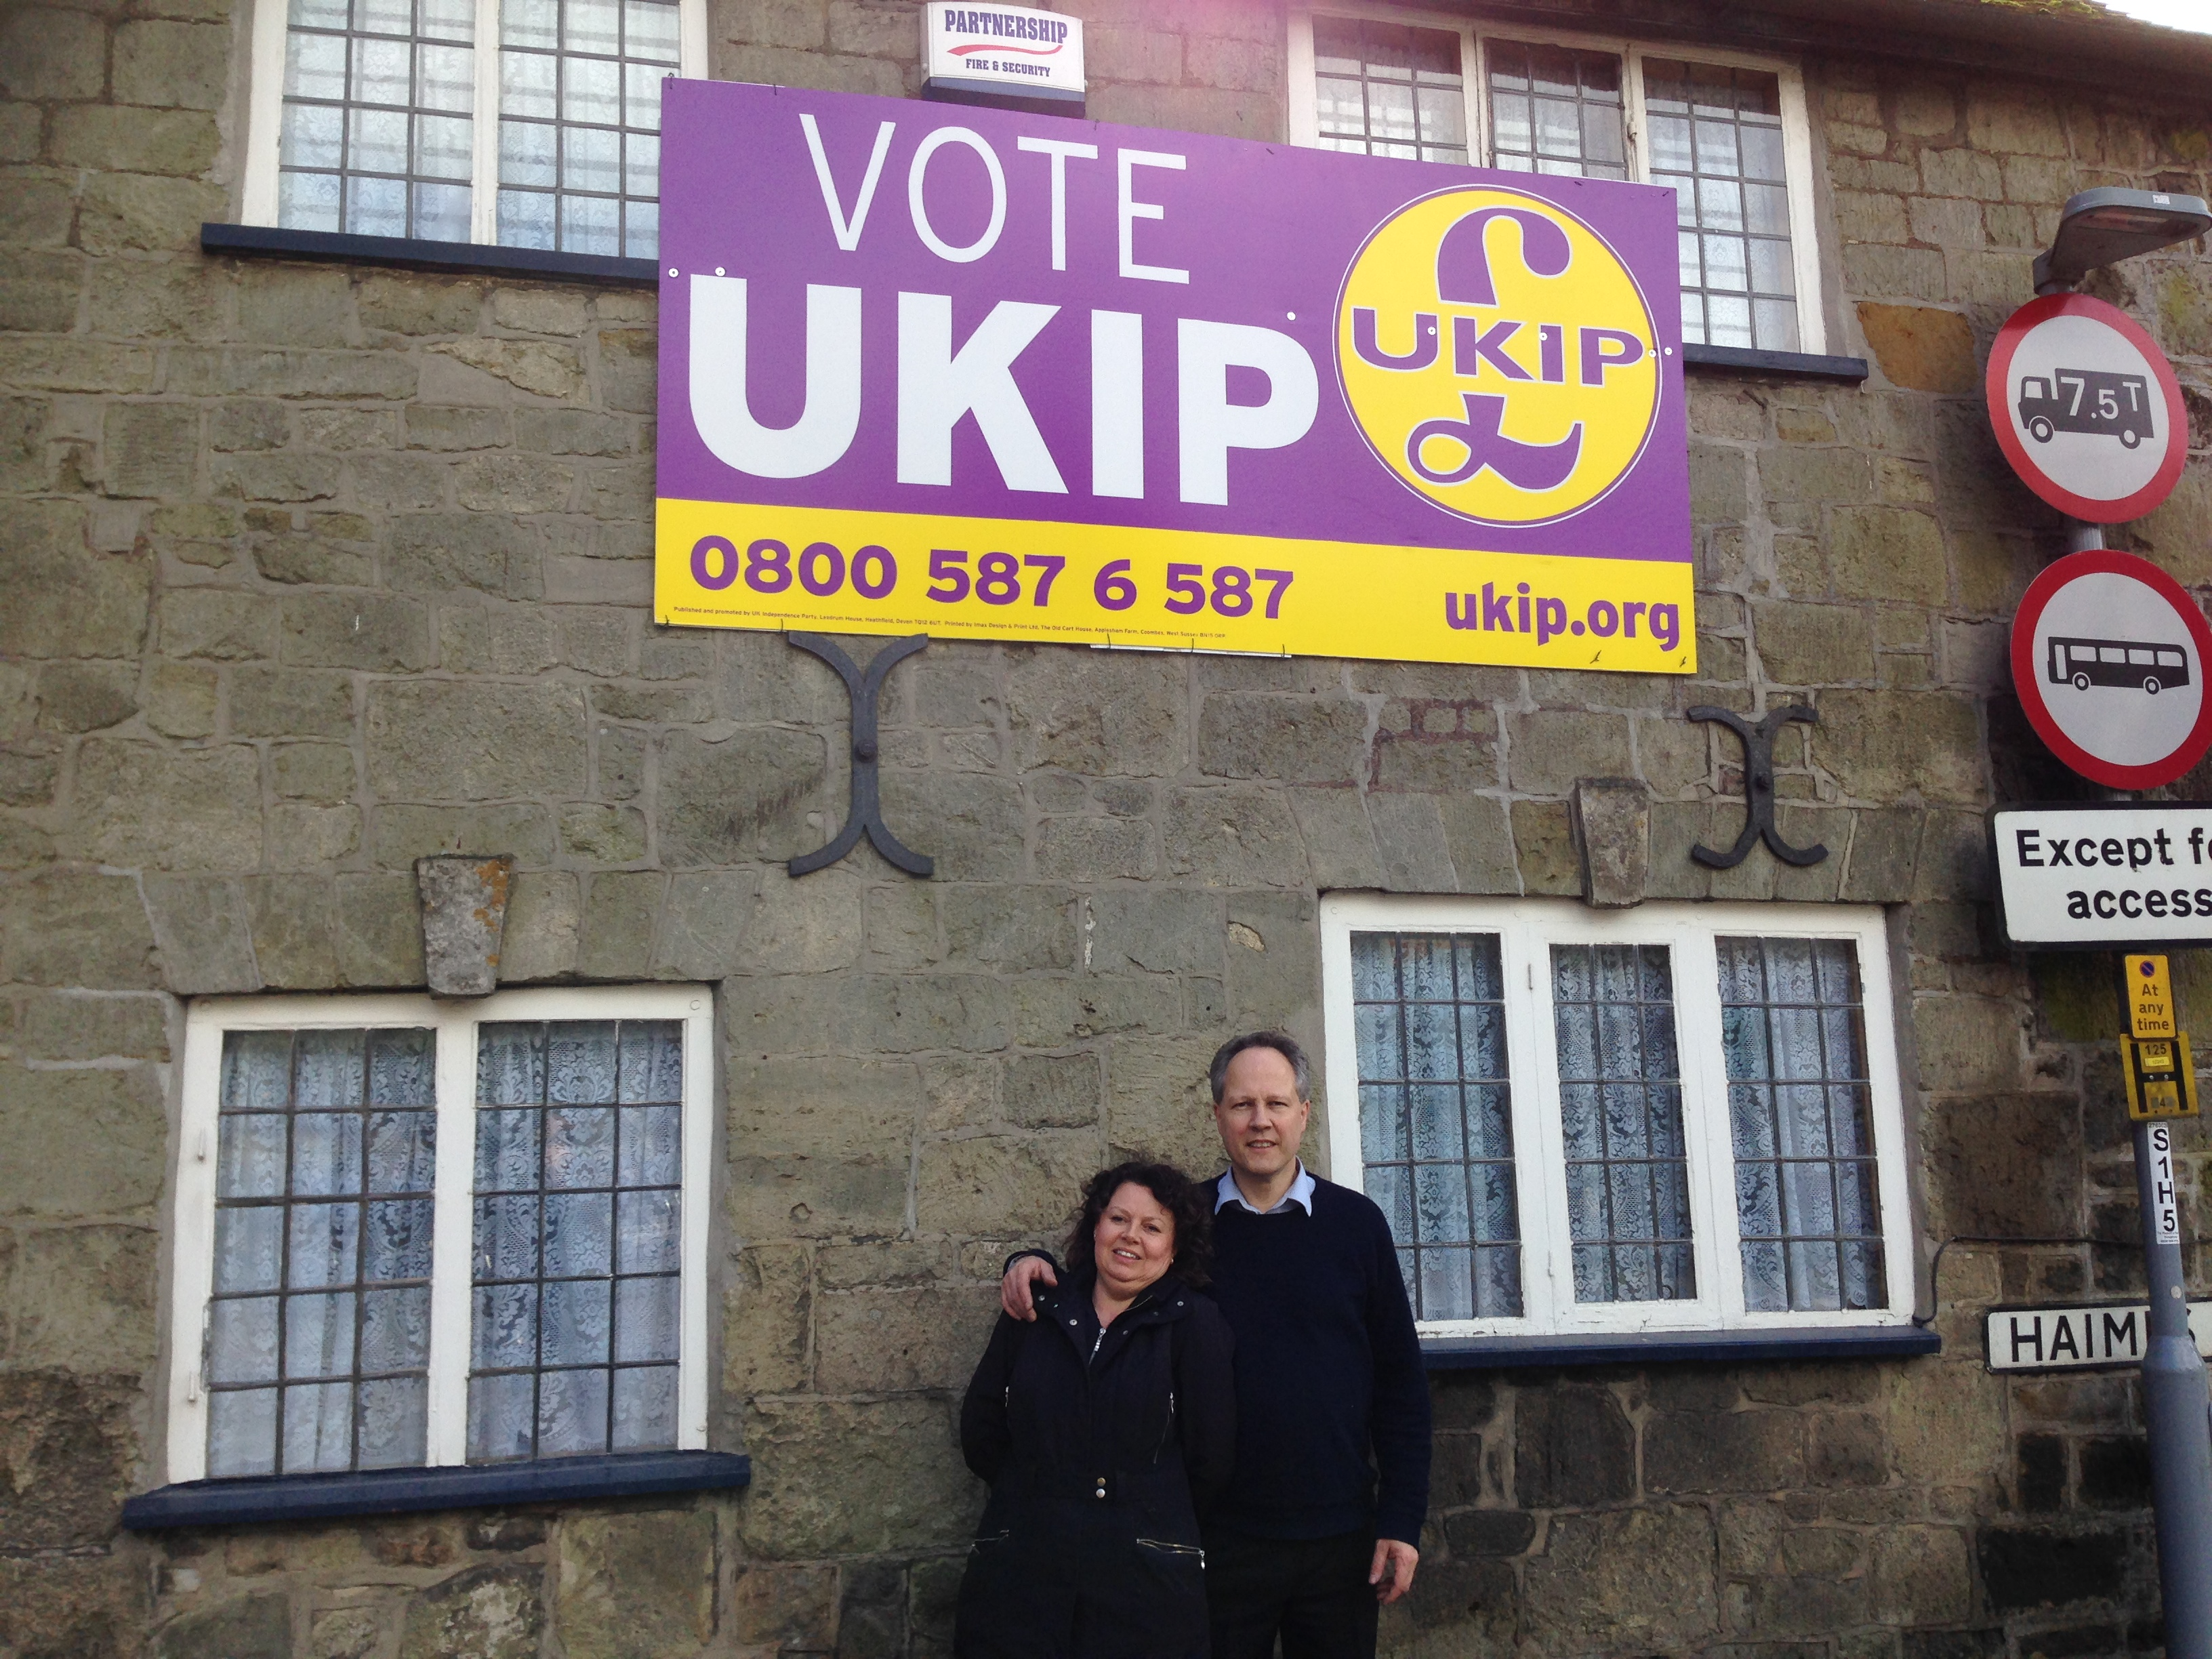 Steve Unwin and UKIP Poster